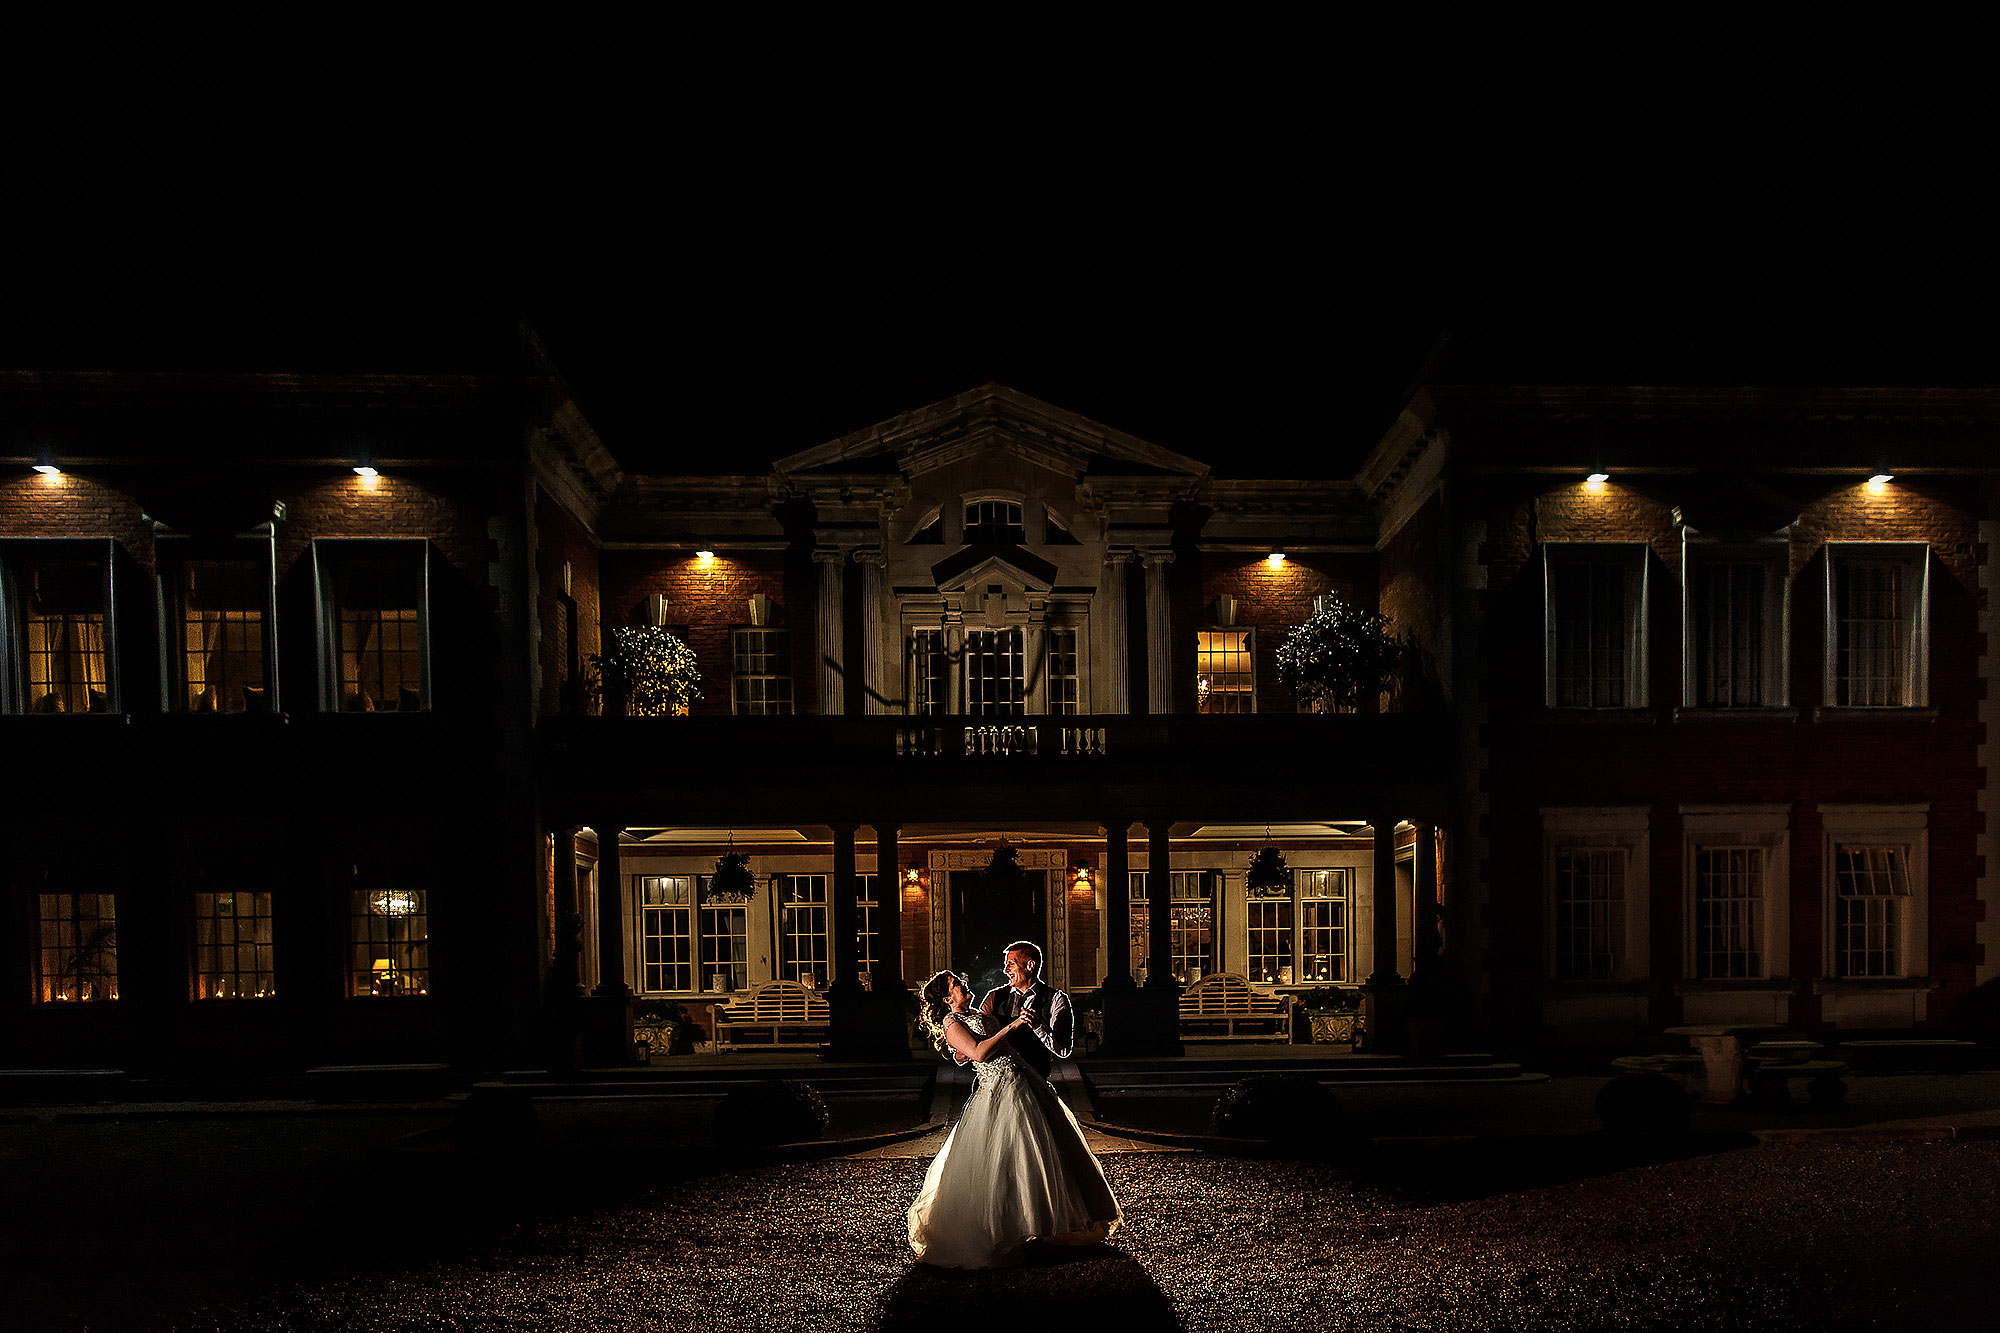 Bride and groom dancing outside Eaves Hall at night with the front of the building lit | Eaves Hall wedding photography by Toni Darcy